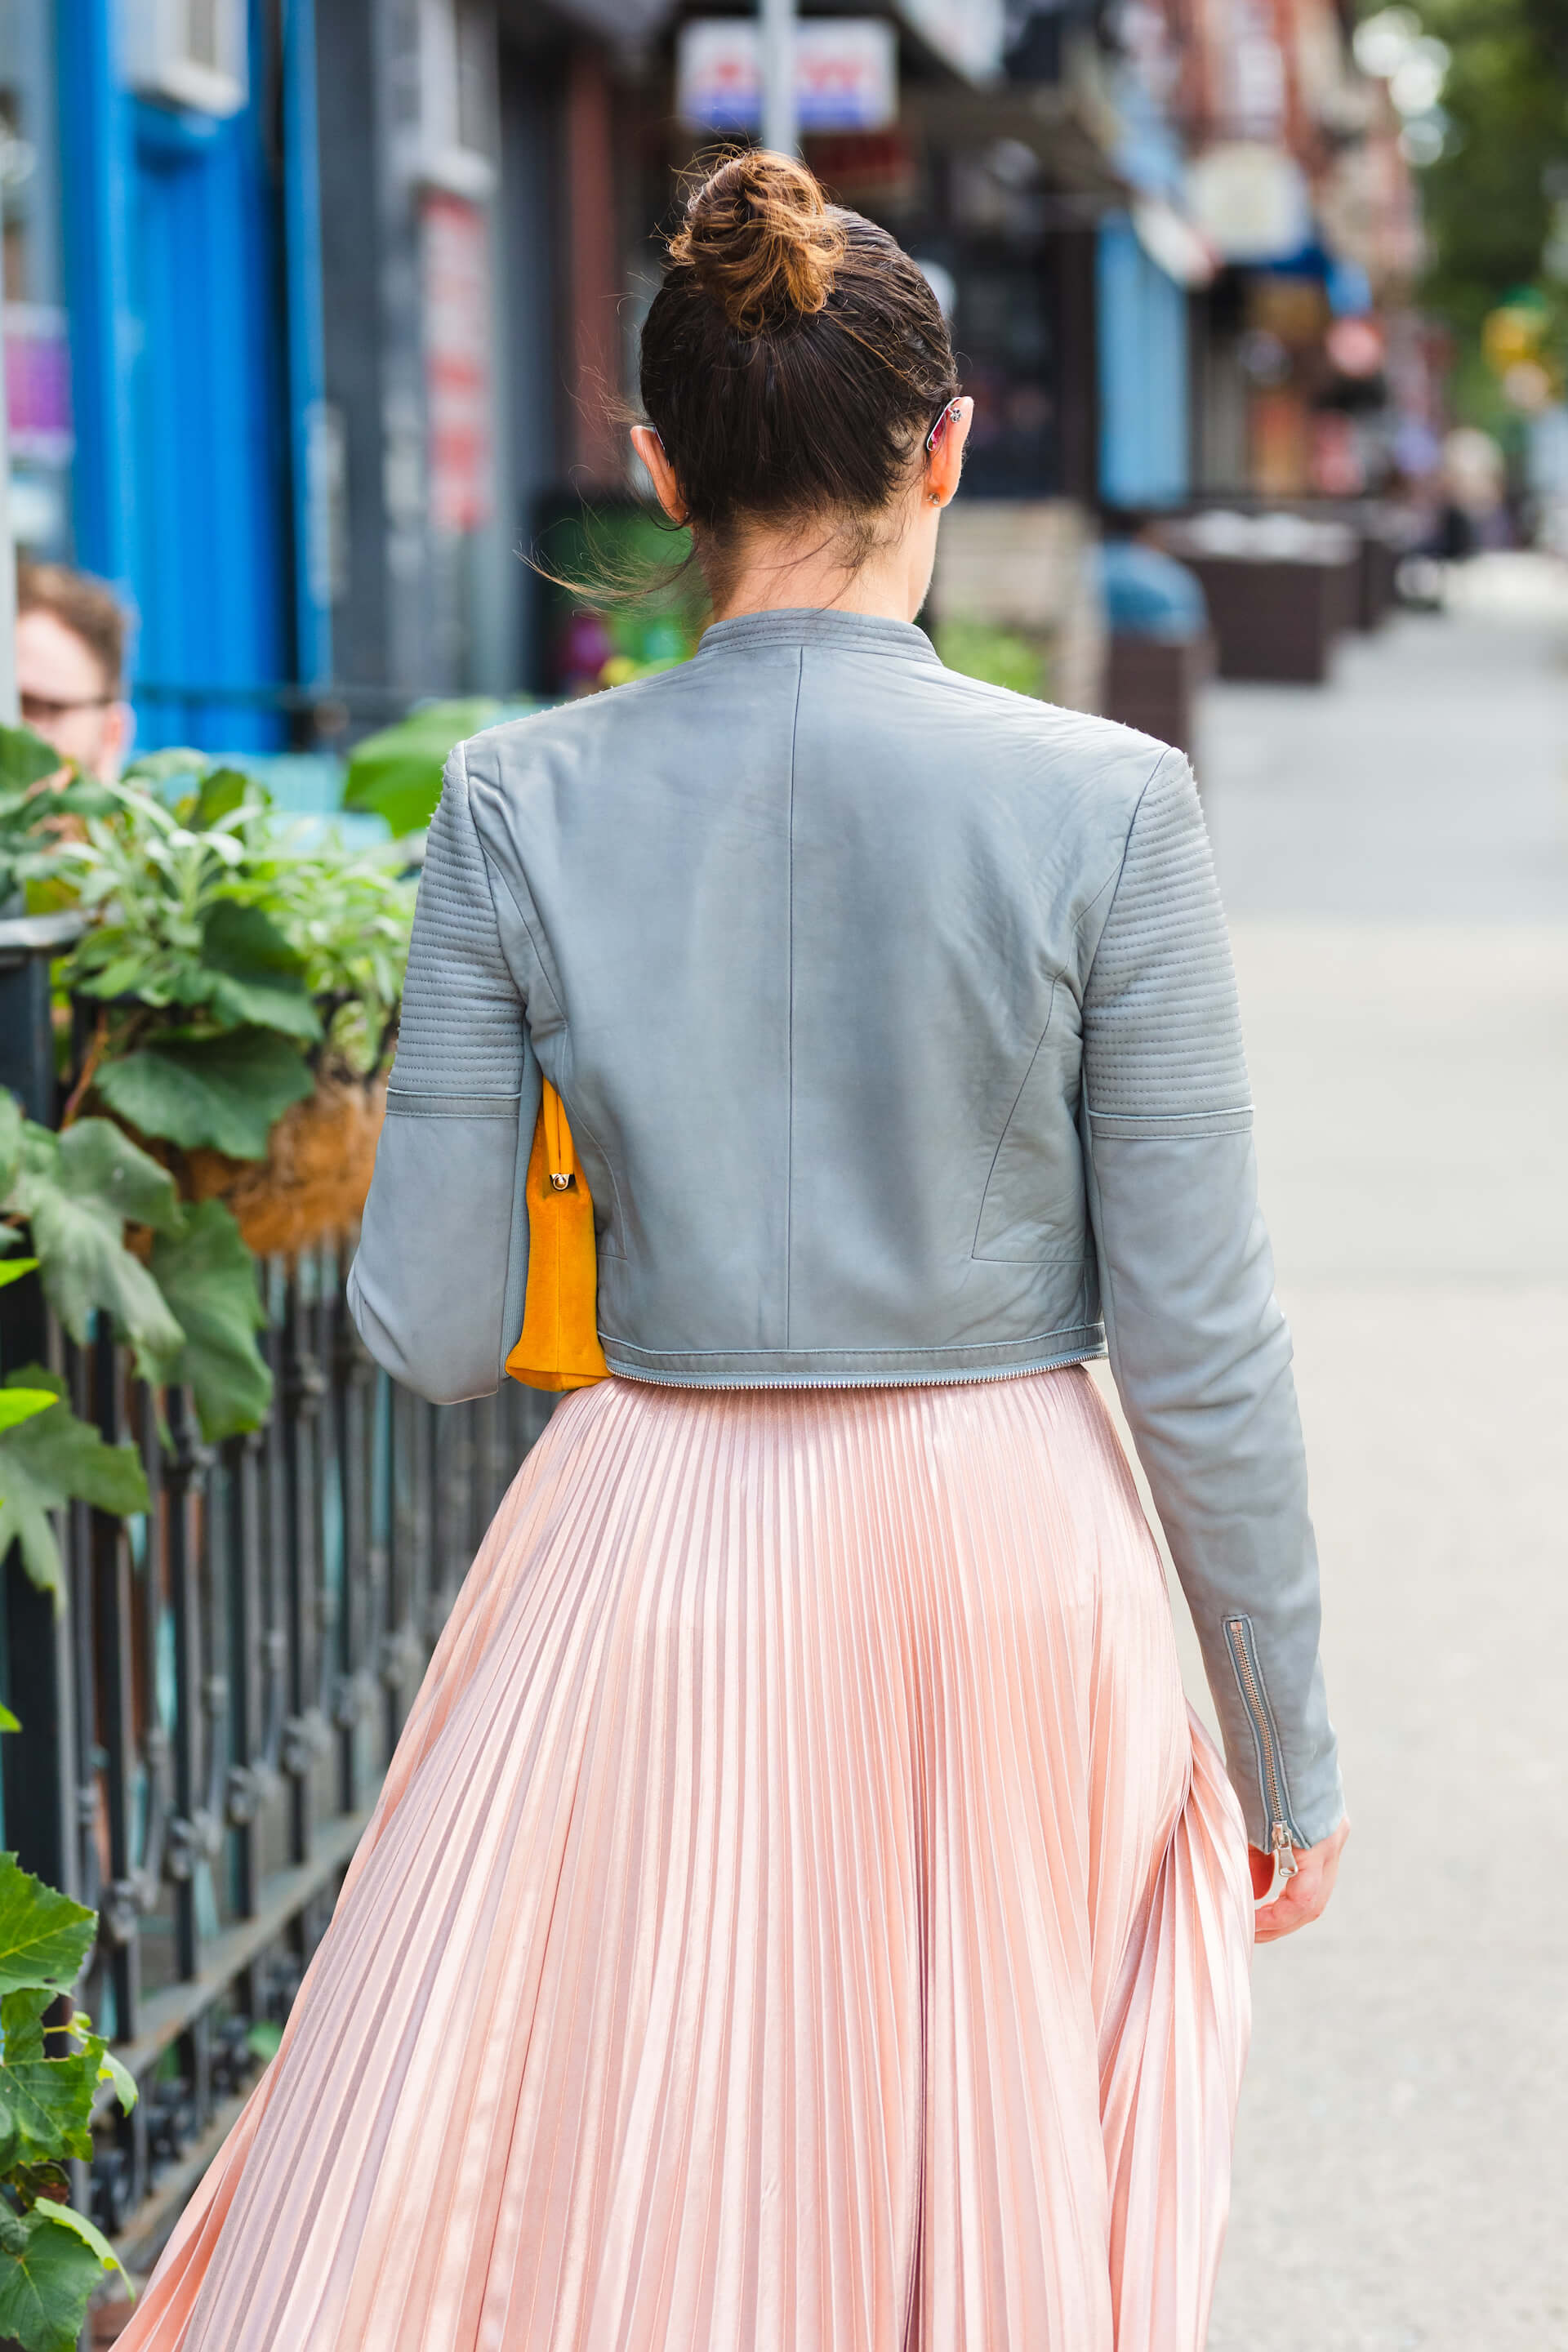 ALC Pleated Skirt Rebecca Taylor Leather Jacket Look by Modnitsa Styling